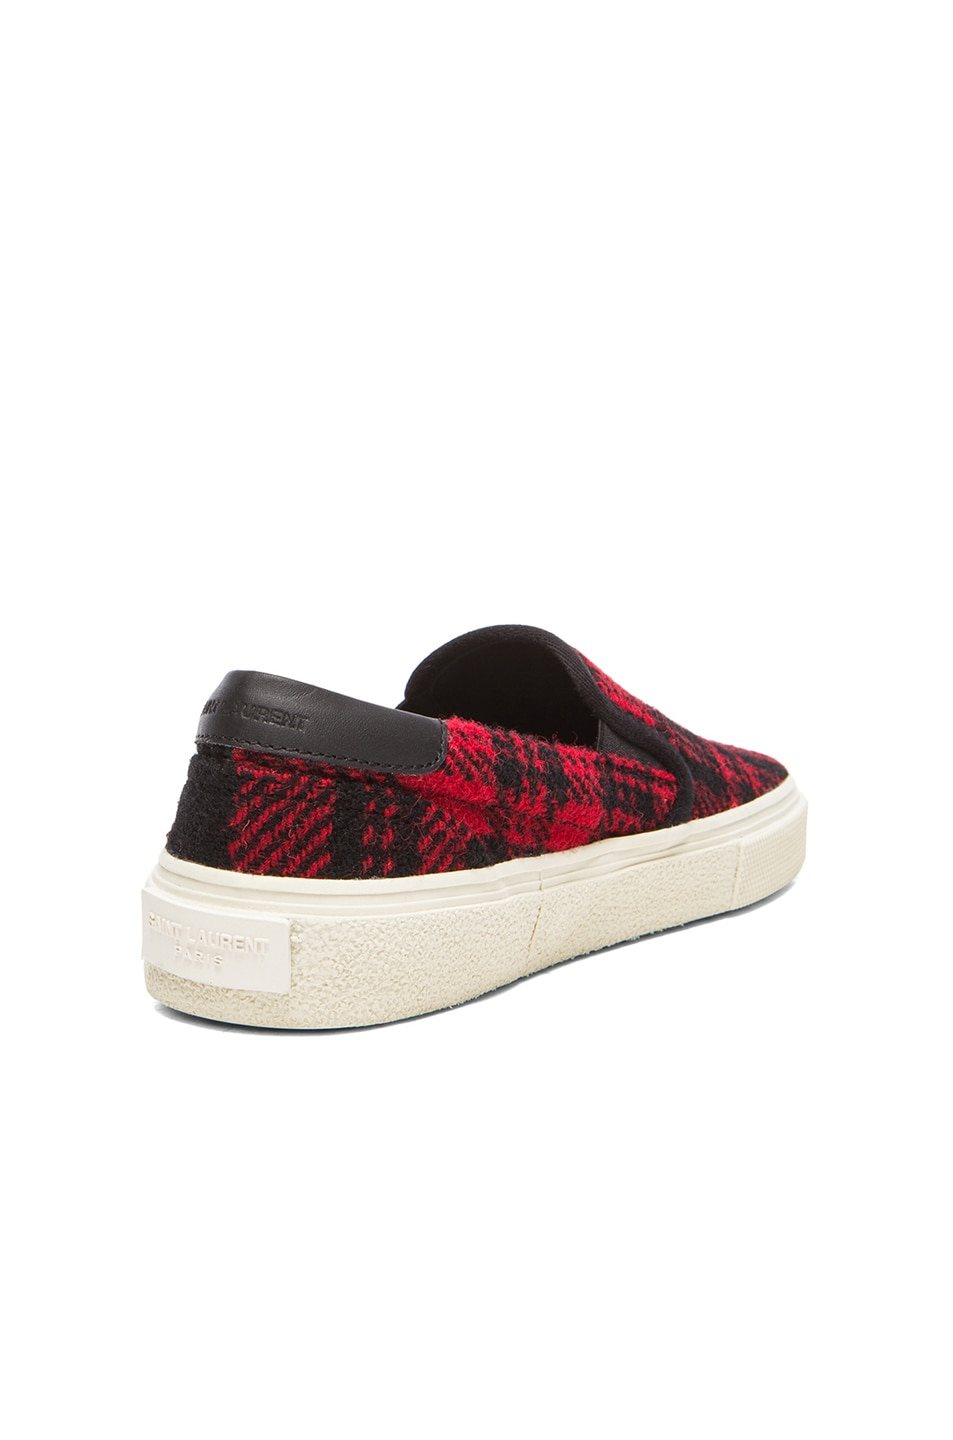 Image 3 of Saint Laurent Tweed Skate Slip-On Sneakers in Red & Black